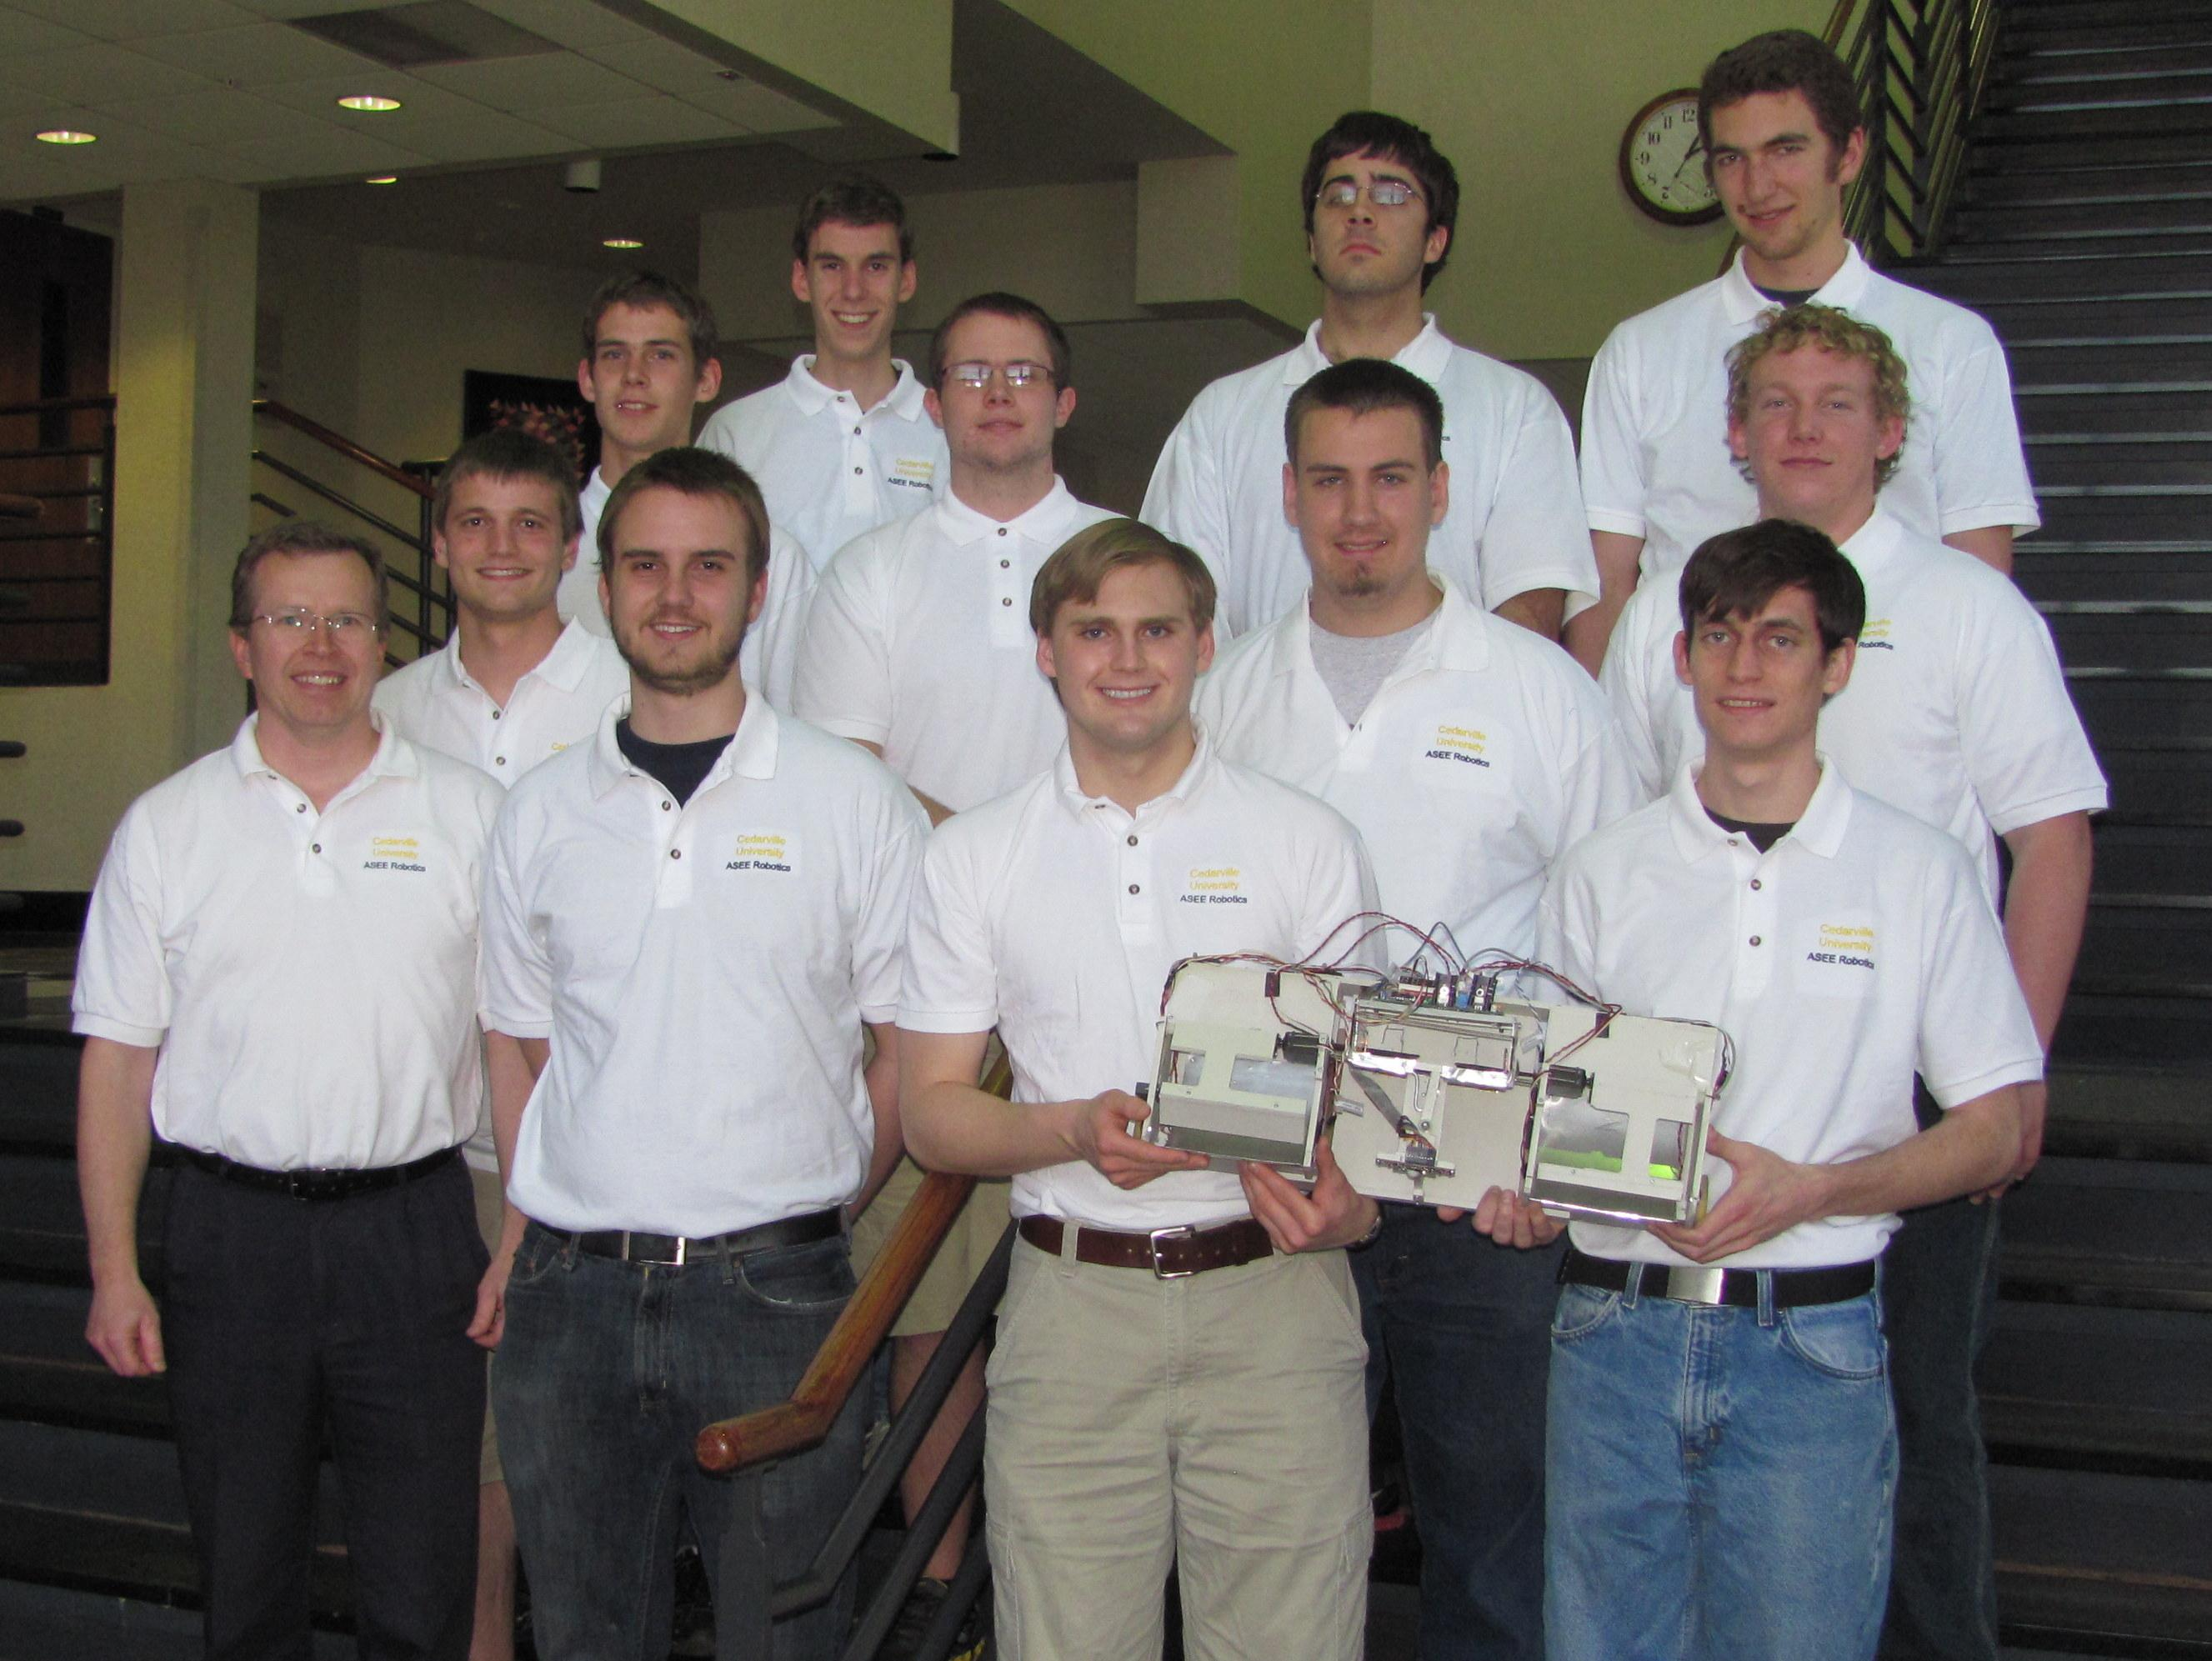 Cedarville University 2013 ASEE Robotics Team